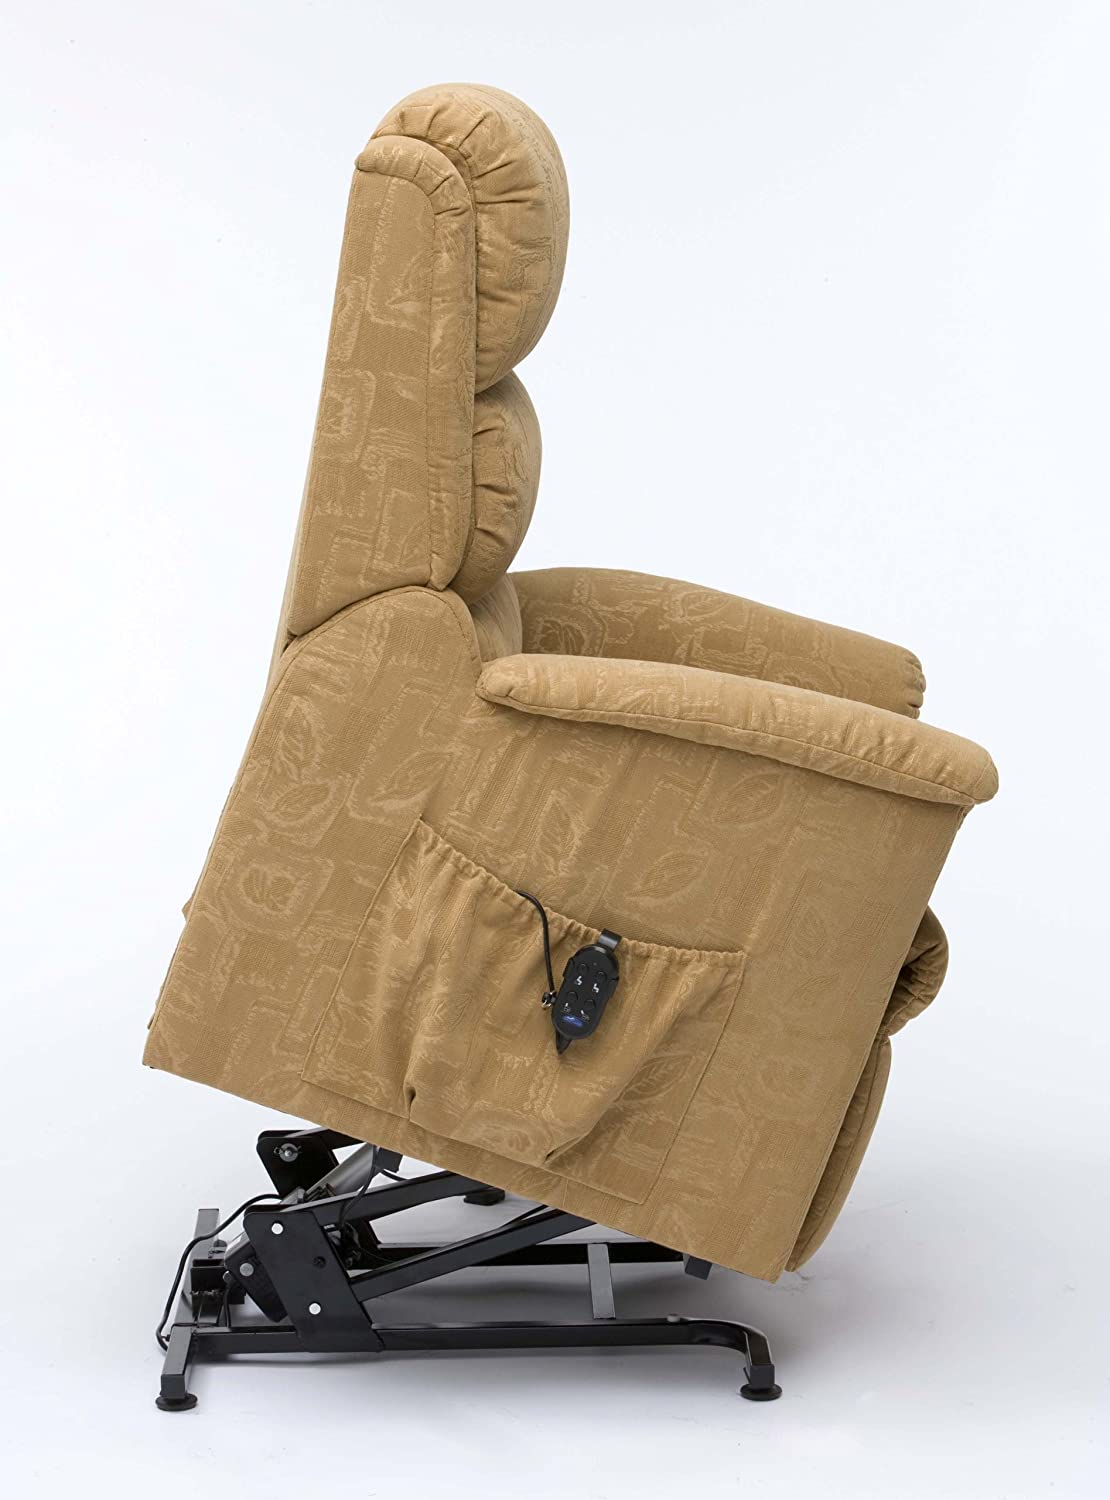 Nevada dual motor rise and recliner mobility chair